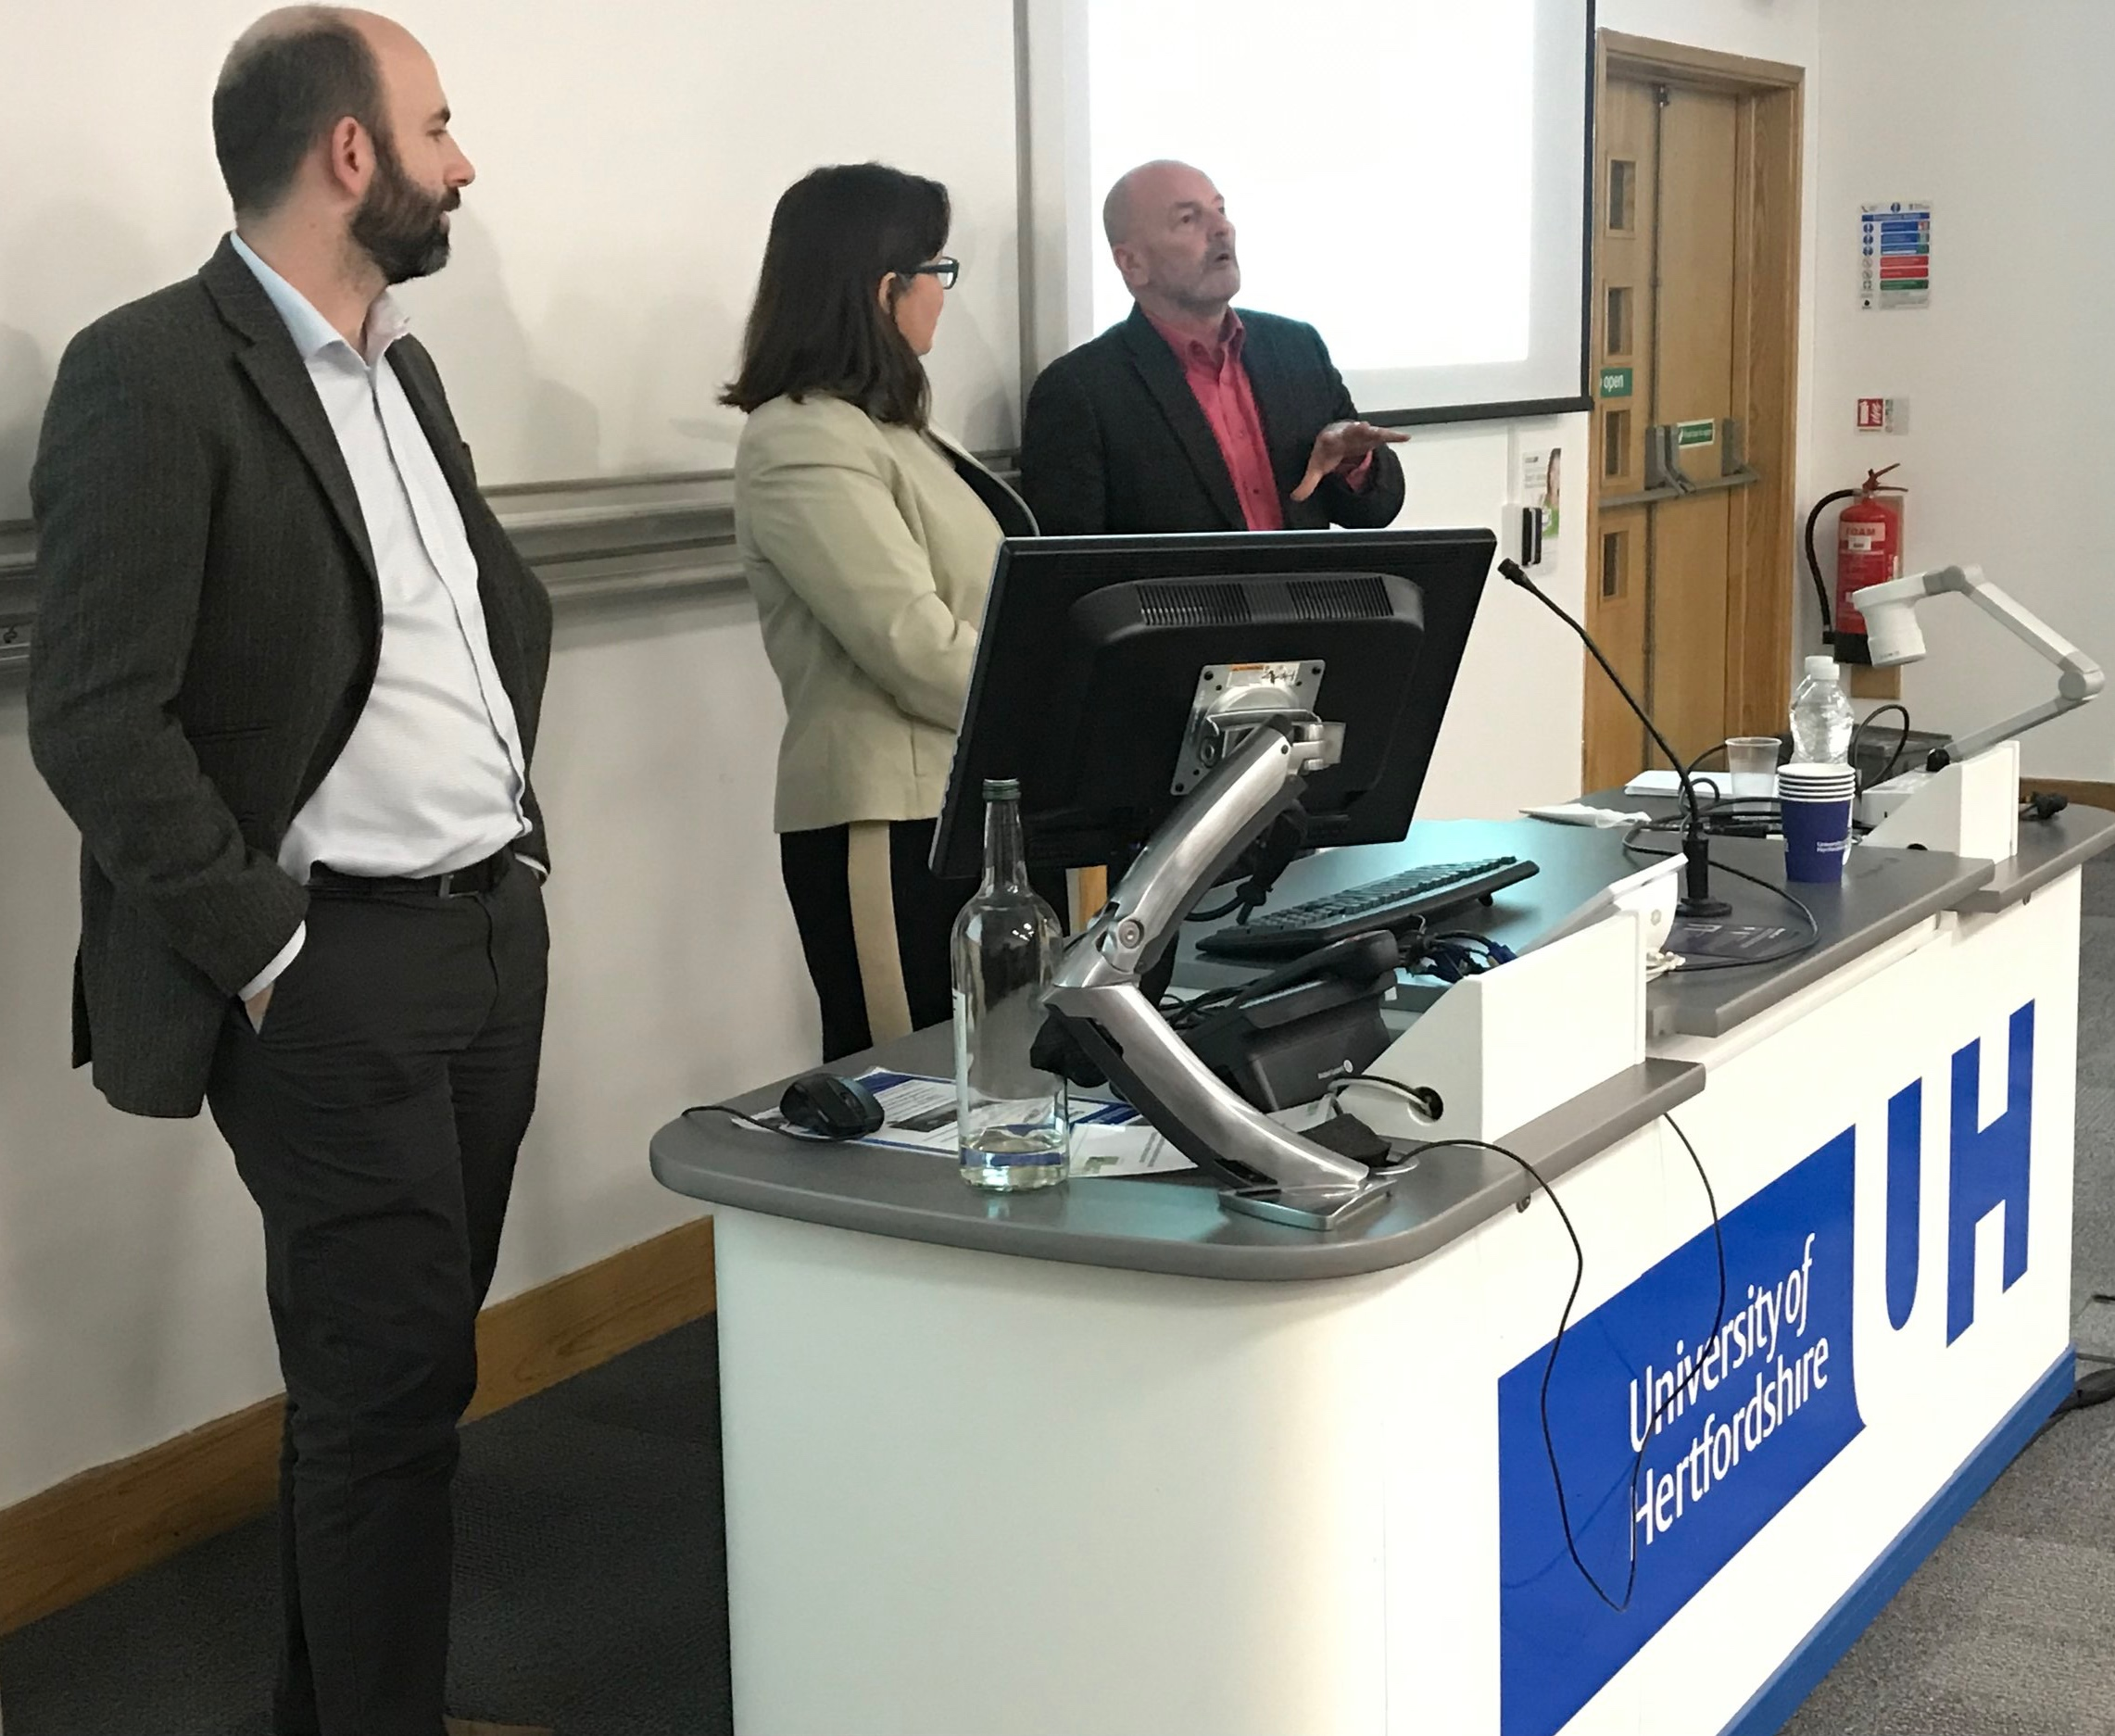 - ResDev19 Keynote Panel: Career Development, L to R: Assoc. Prof Daniel McClusky, School of Engineering and Technology; Dr Elanor Warwick, Head of Strategic Policy & Research at Clarion Housing Group, and Prof Nigel Culkin, Complexity and Management Group.